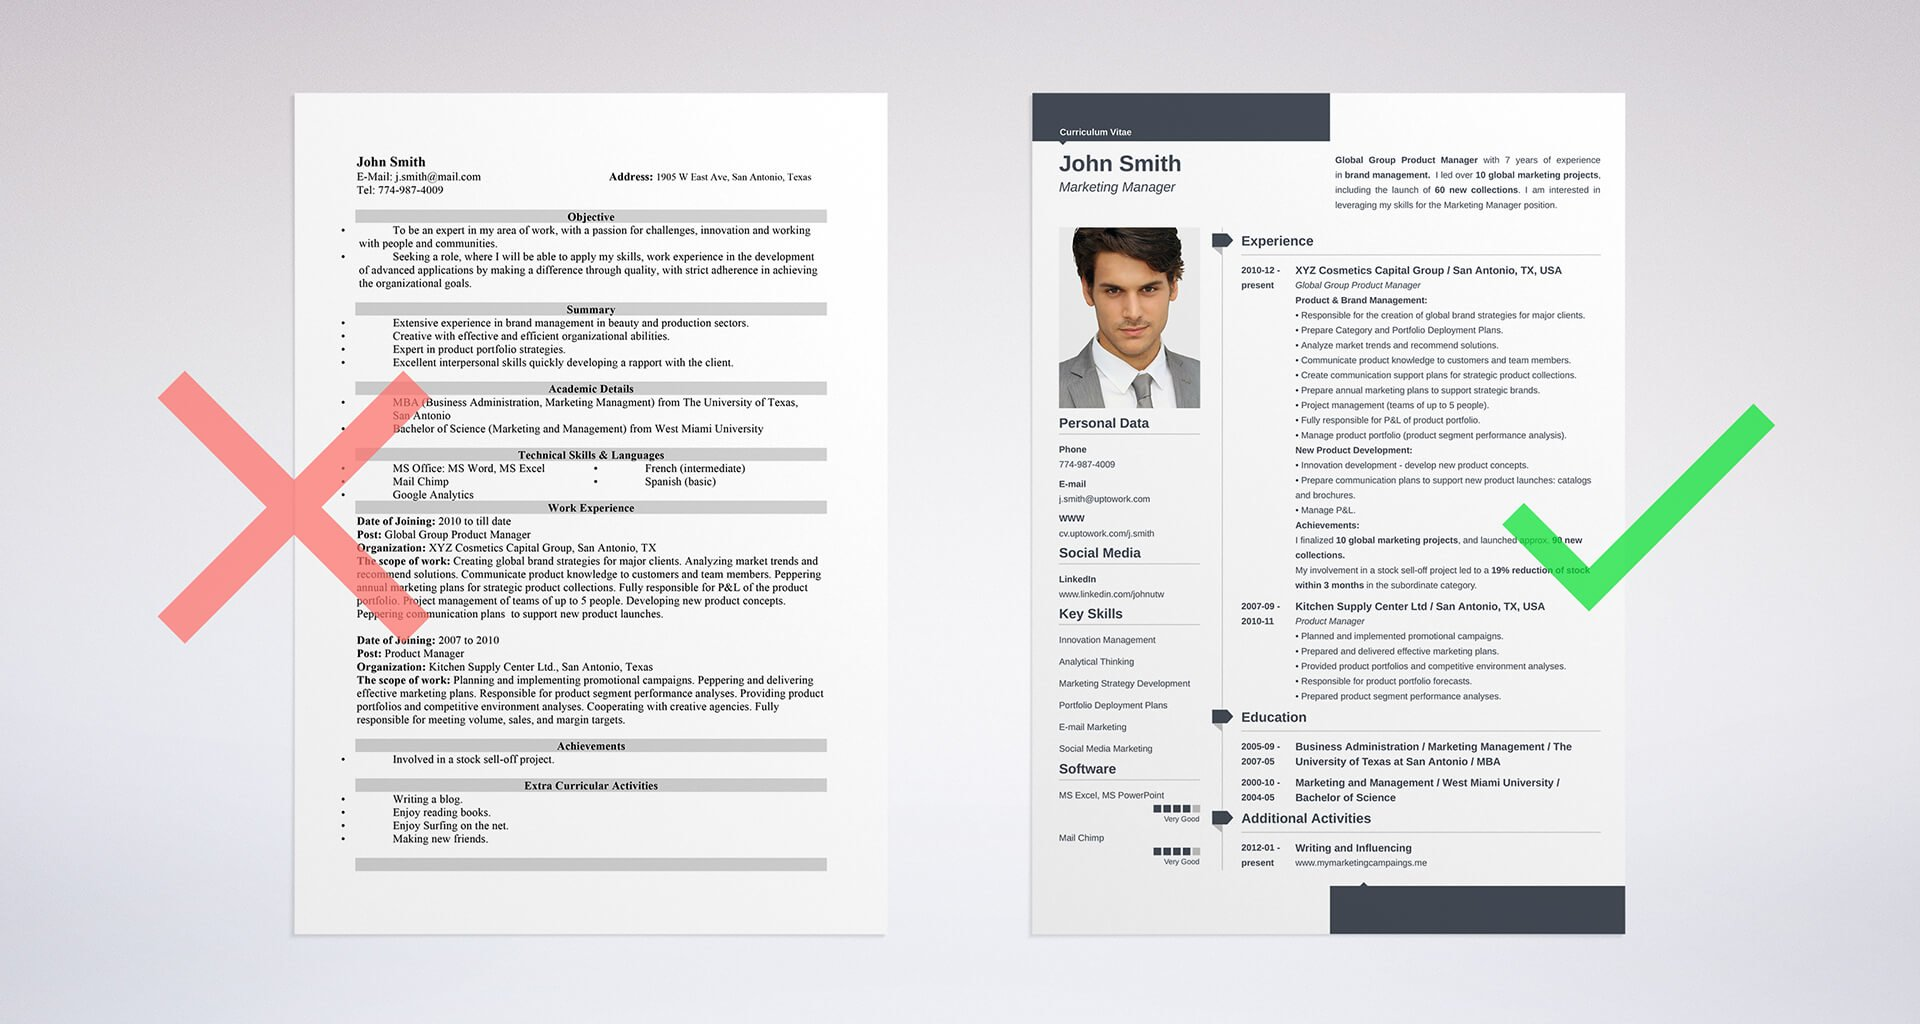 skills for resume best of examples all jobs answer on strasbourg amiens about yourself Resume Best Answer For Skills On Resume